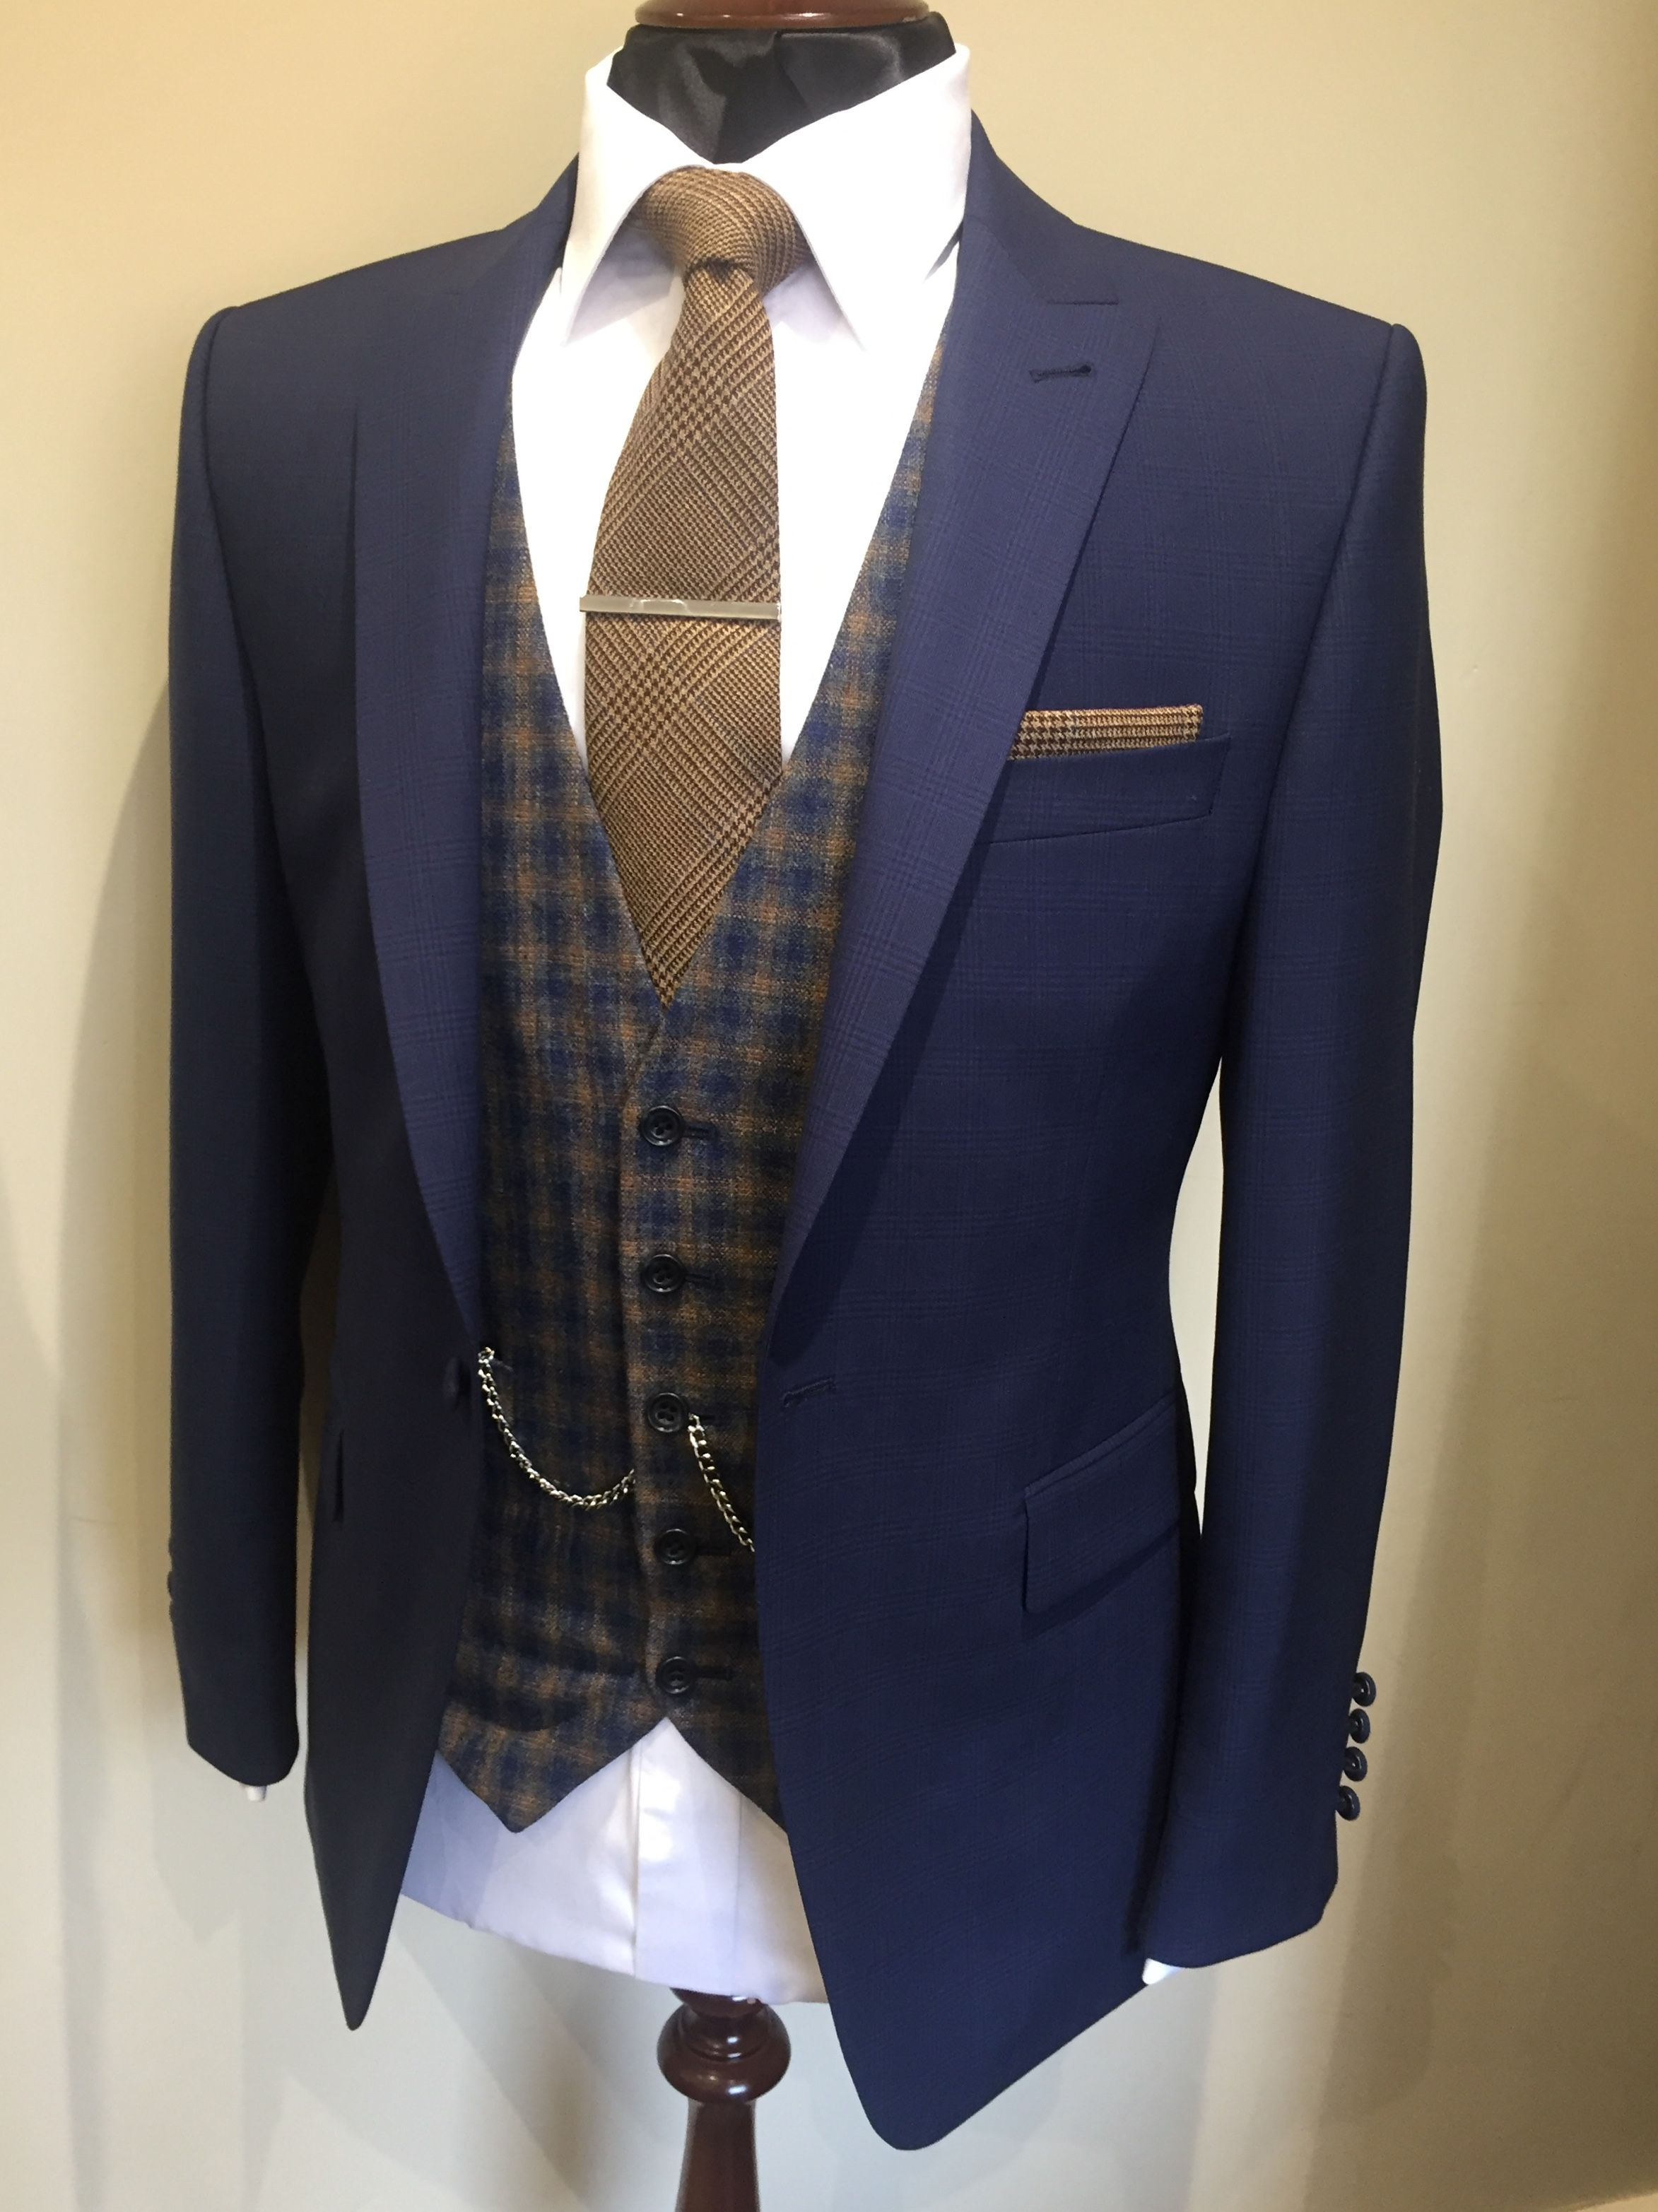 Wedding Suit Hire For Men   Tailoring in 2019  4d720add1d3